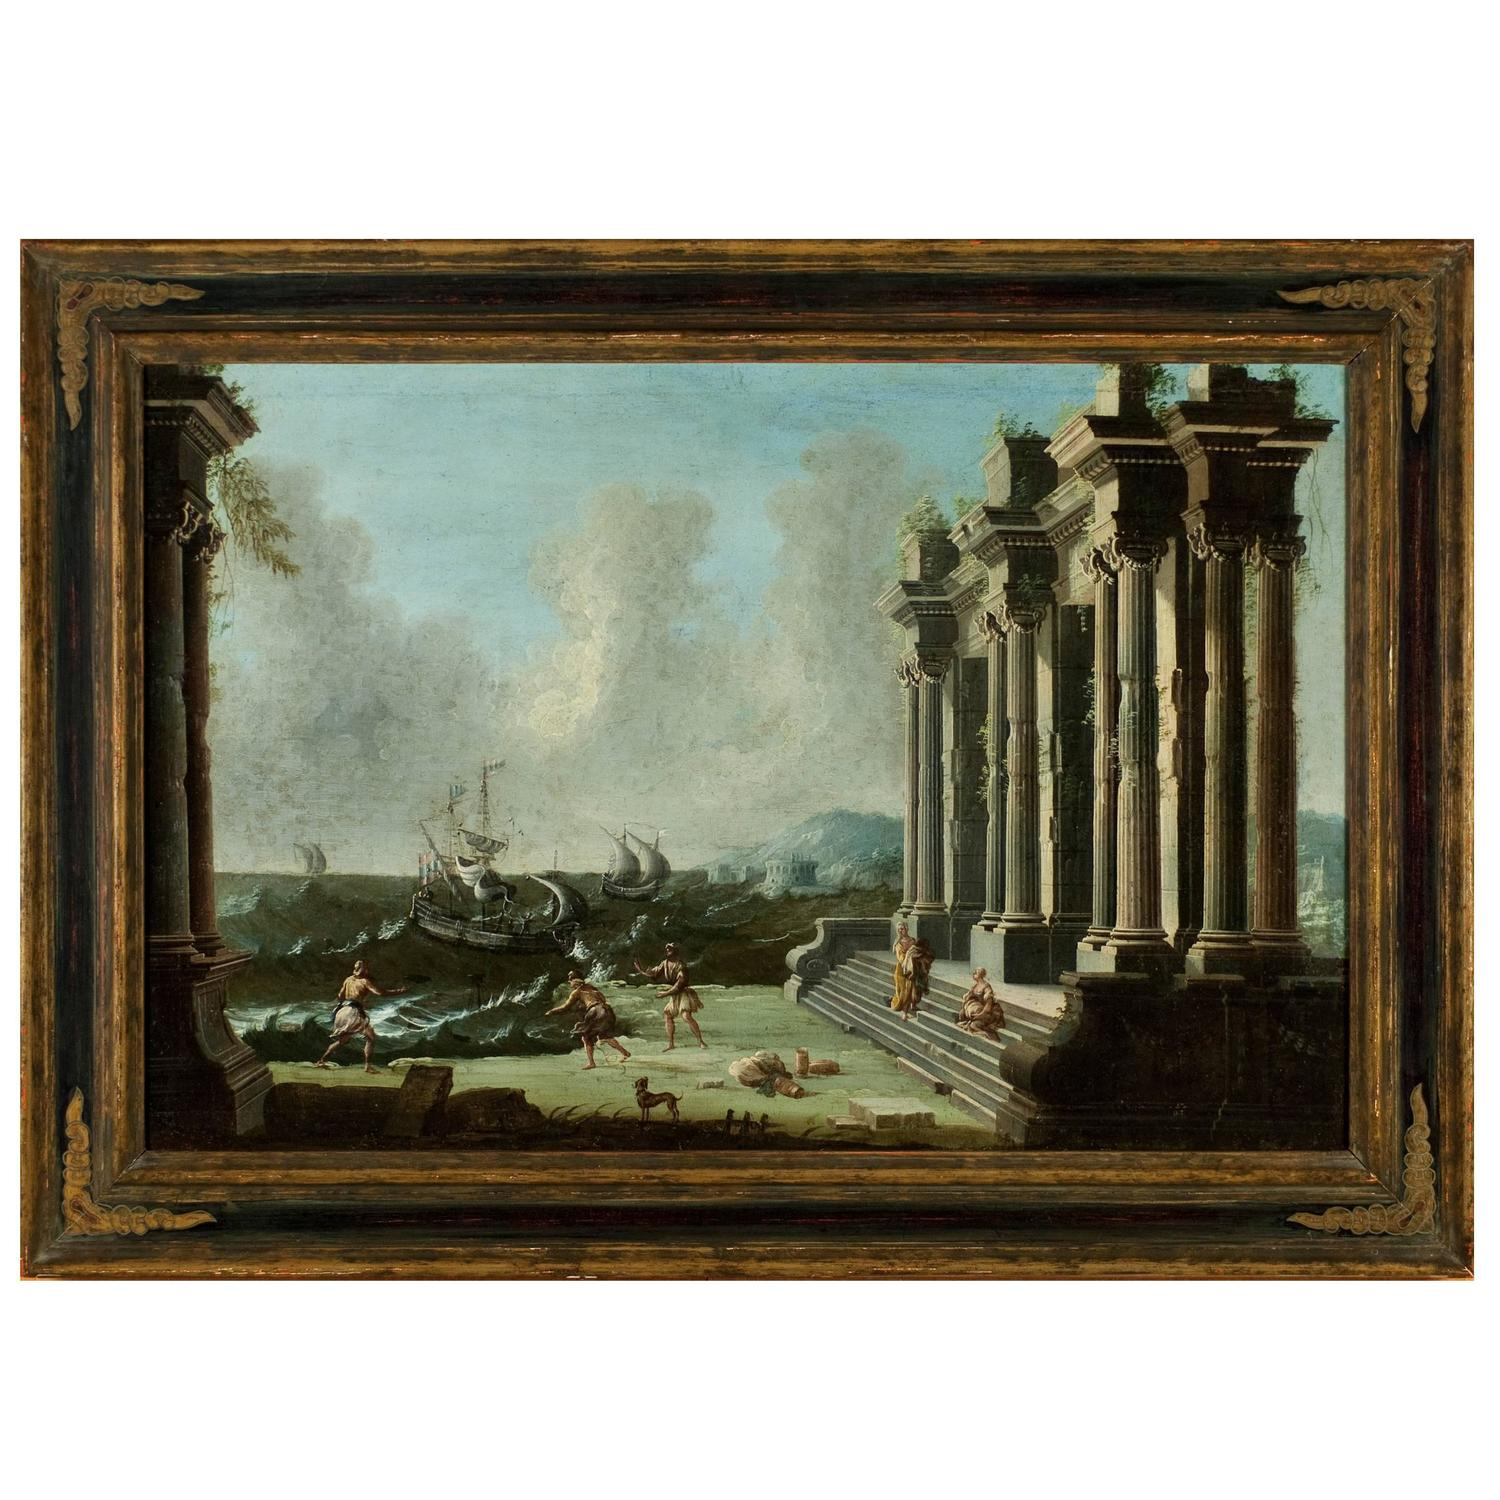 Marvelous photograph of Architectural Ruins Painting by Neapolitan Master Gennaro Greco circa  with #644823 color and 1500x1500 pixels